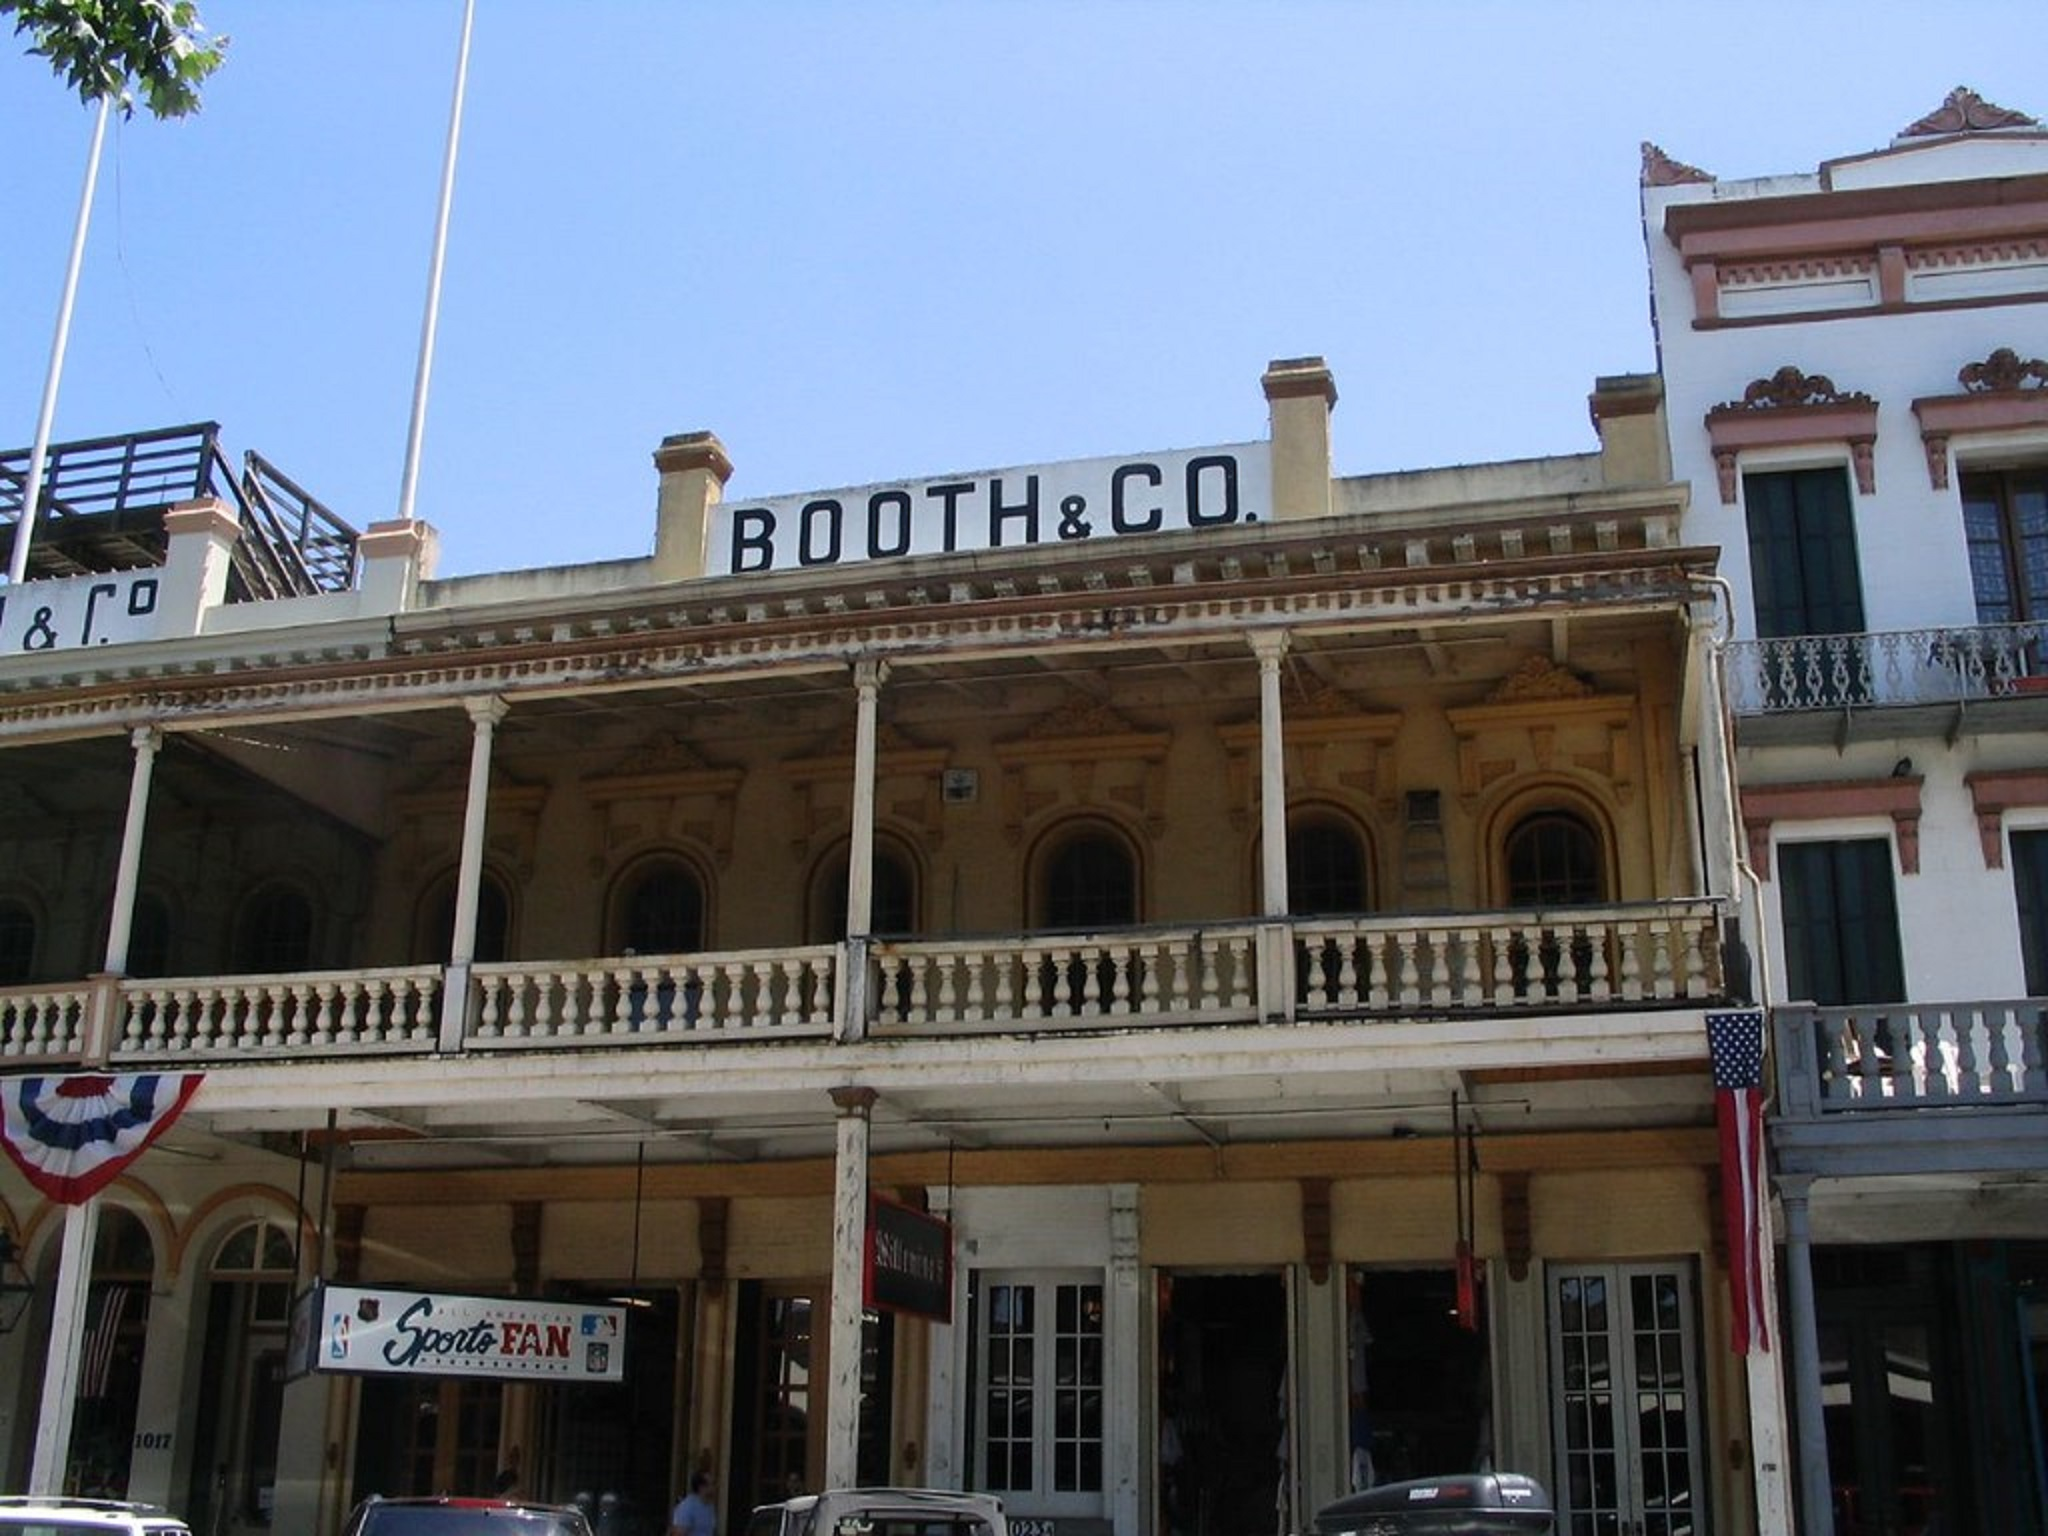 Historic storefronts in Old Sacramento